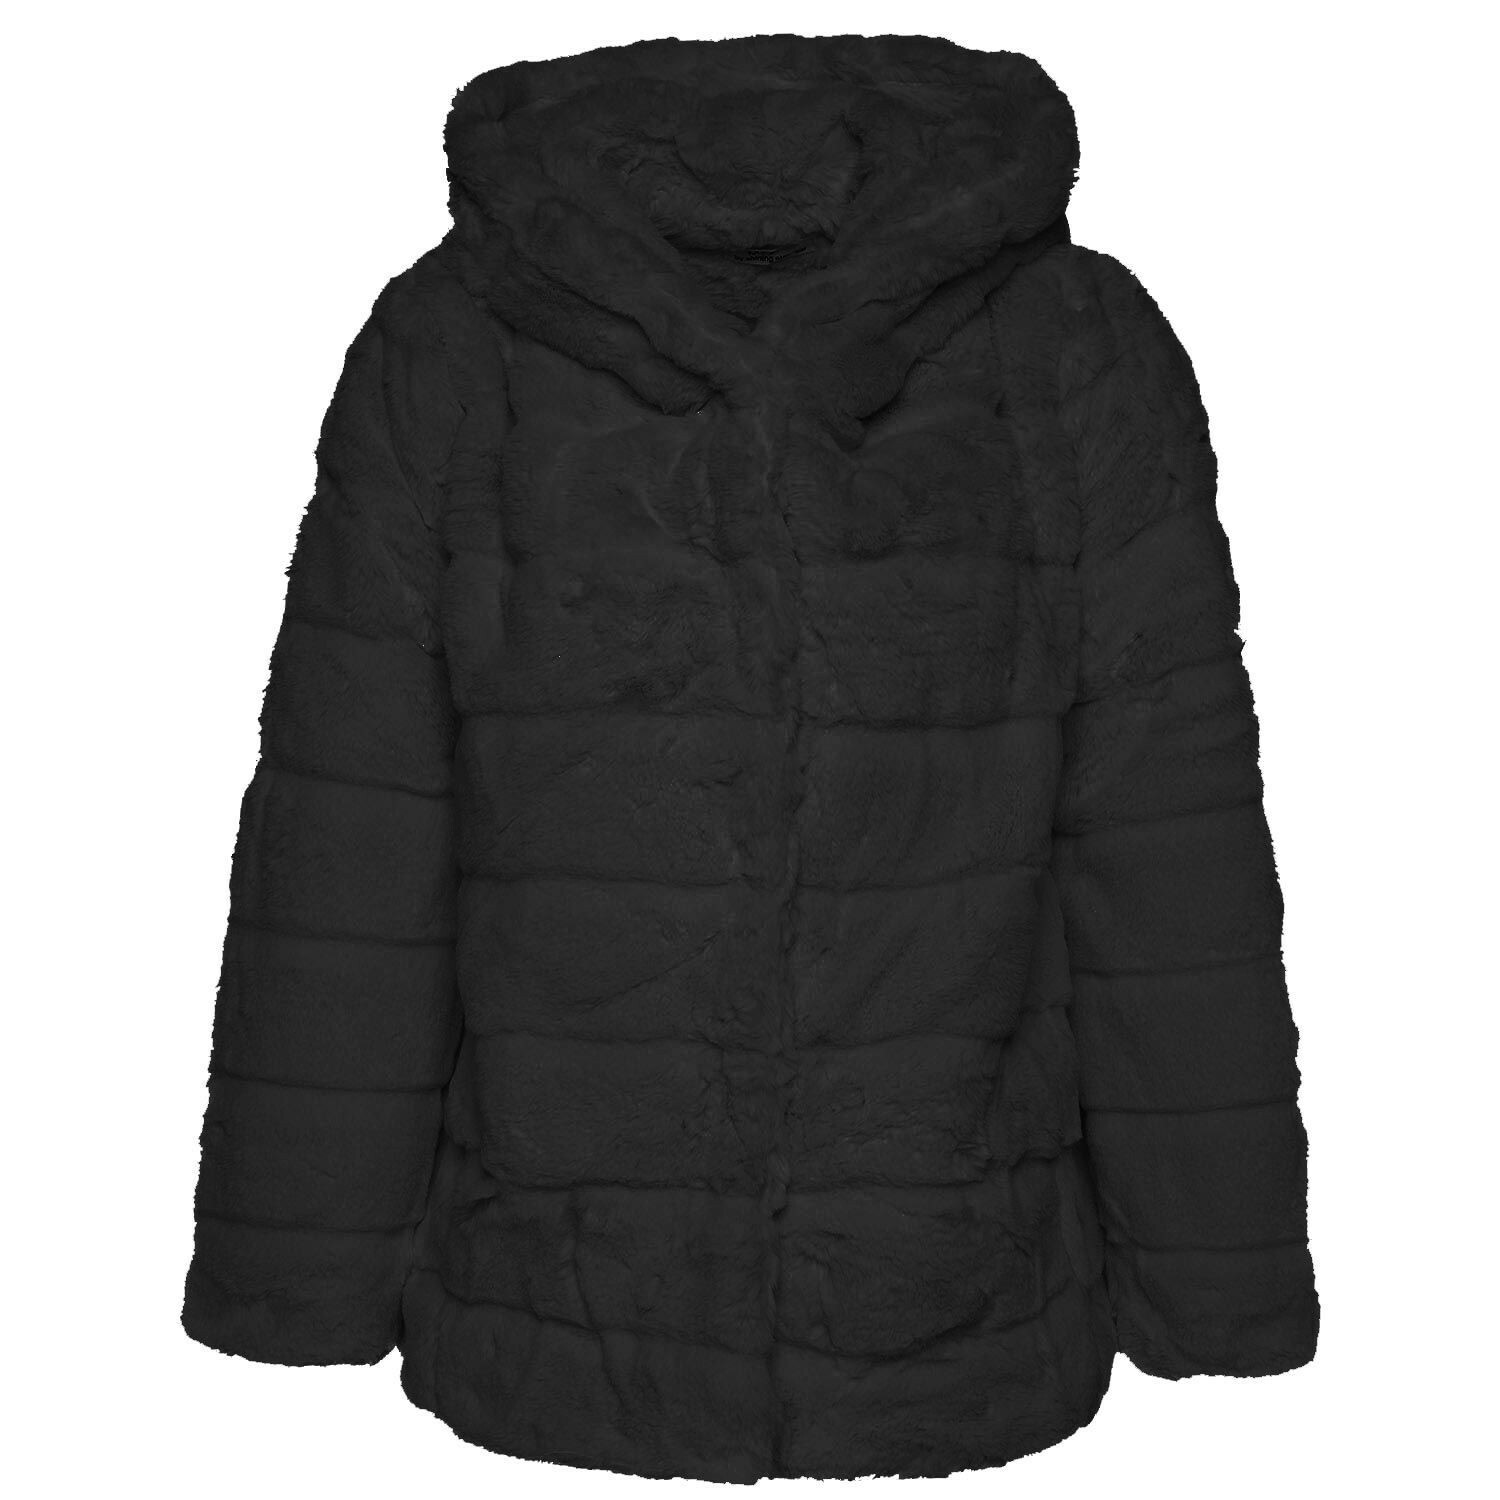 BLACK HOODED TEDDYCOAT